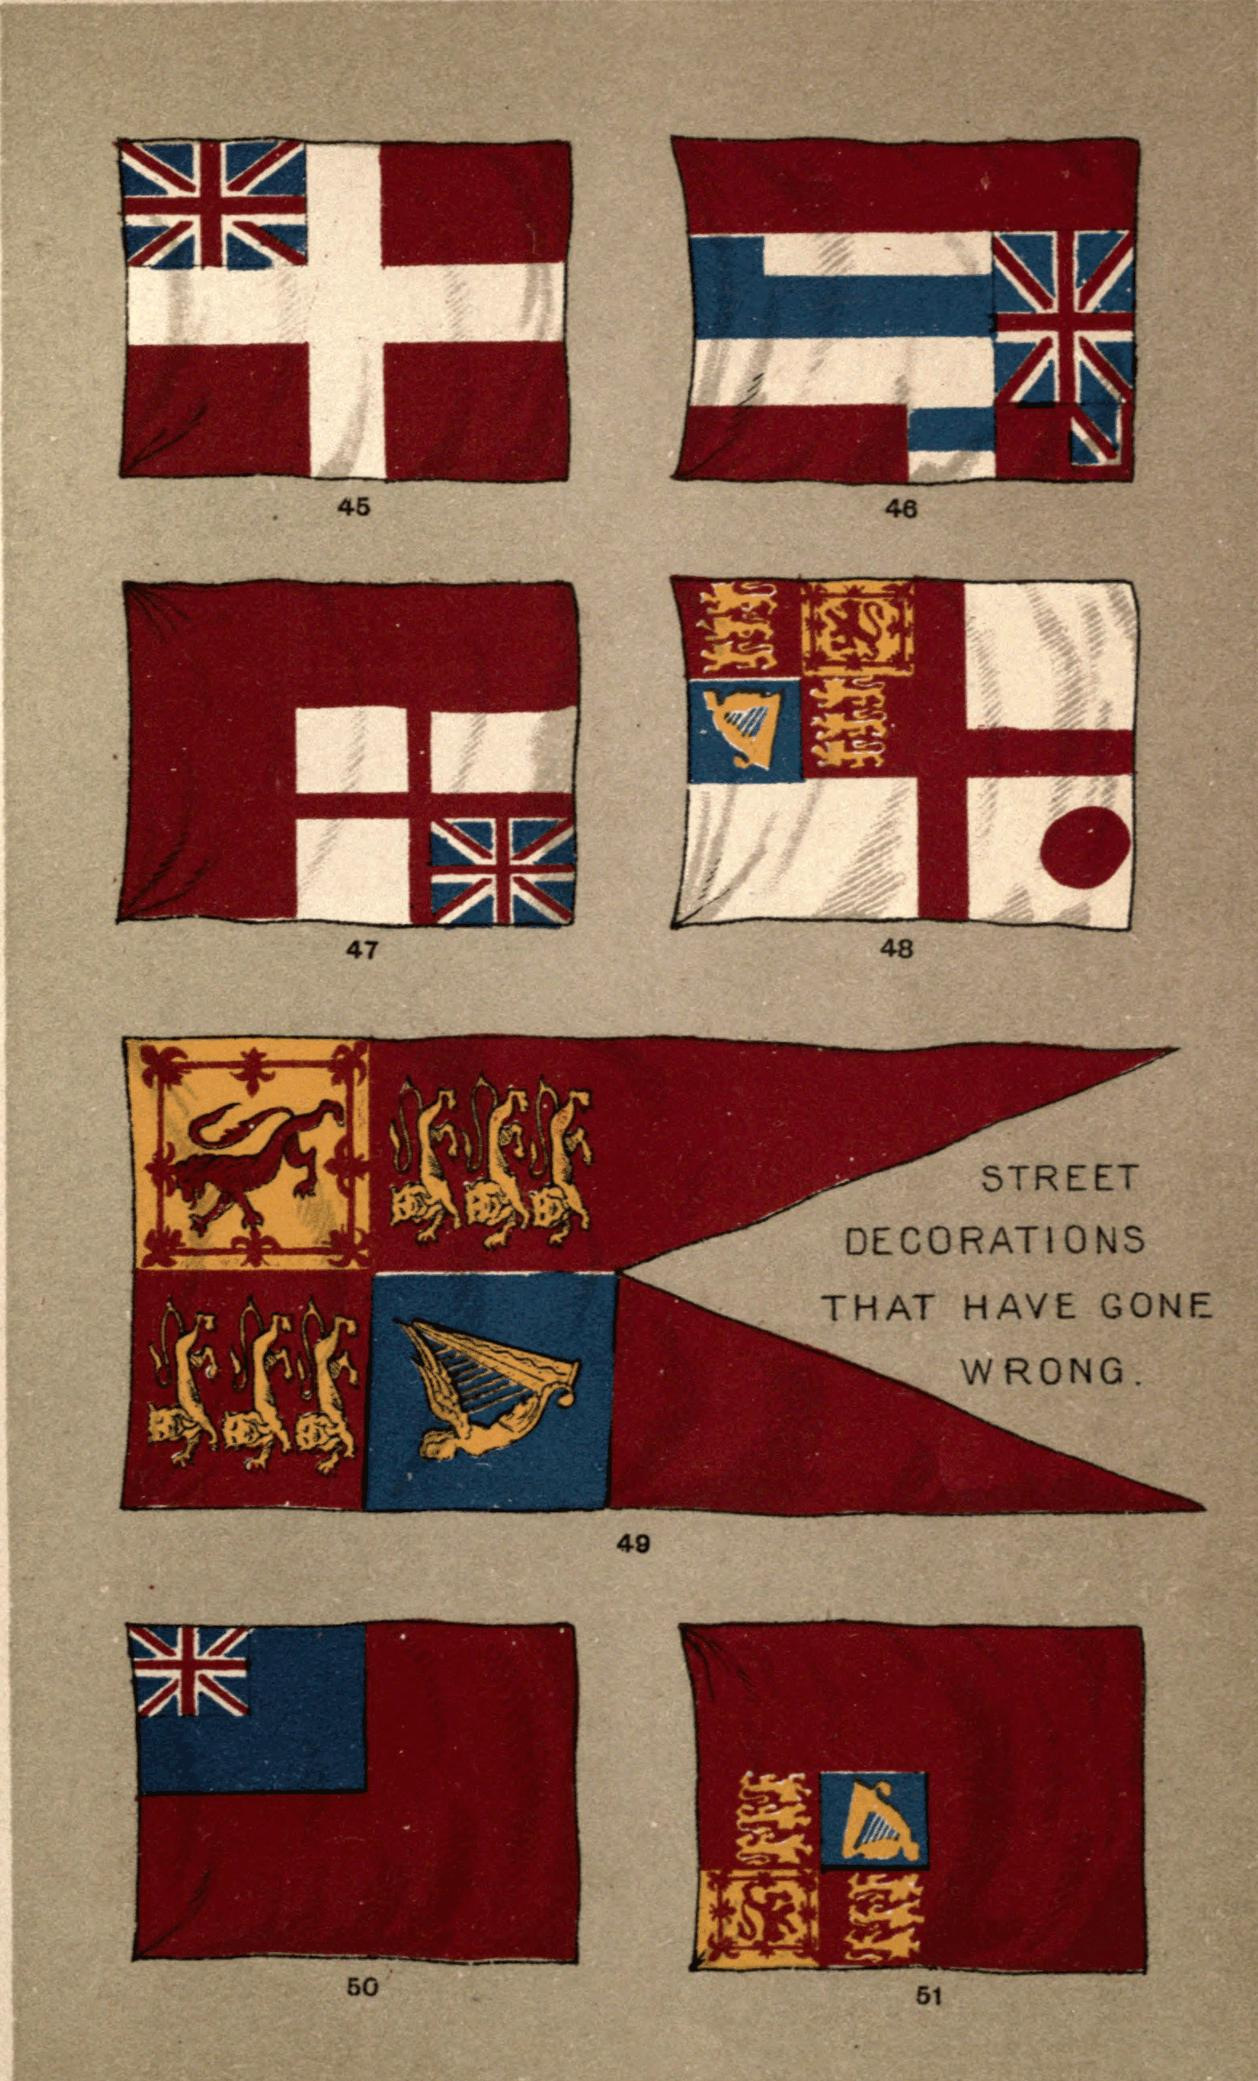 The Project Gutenberg EBook Of Flags World By F Edward Hulme